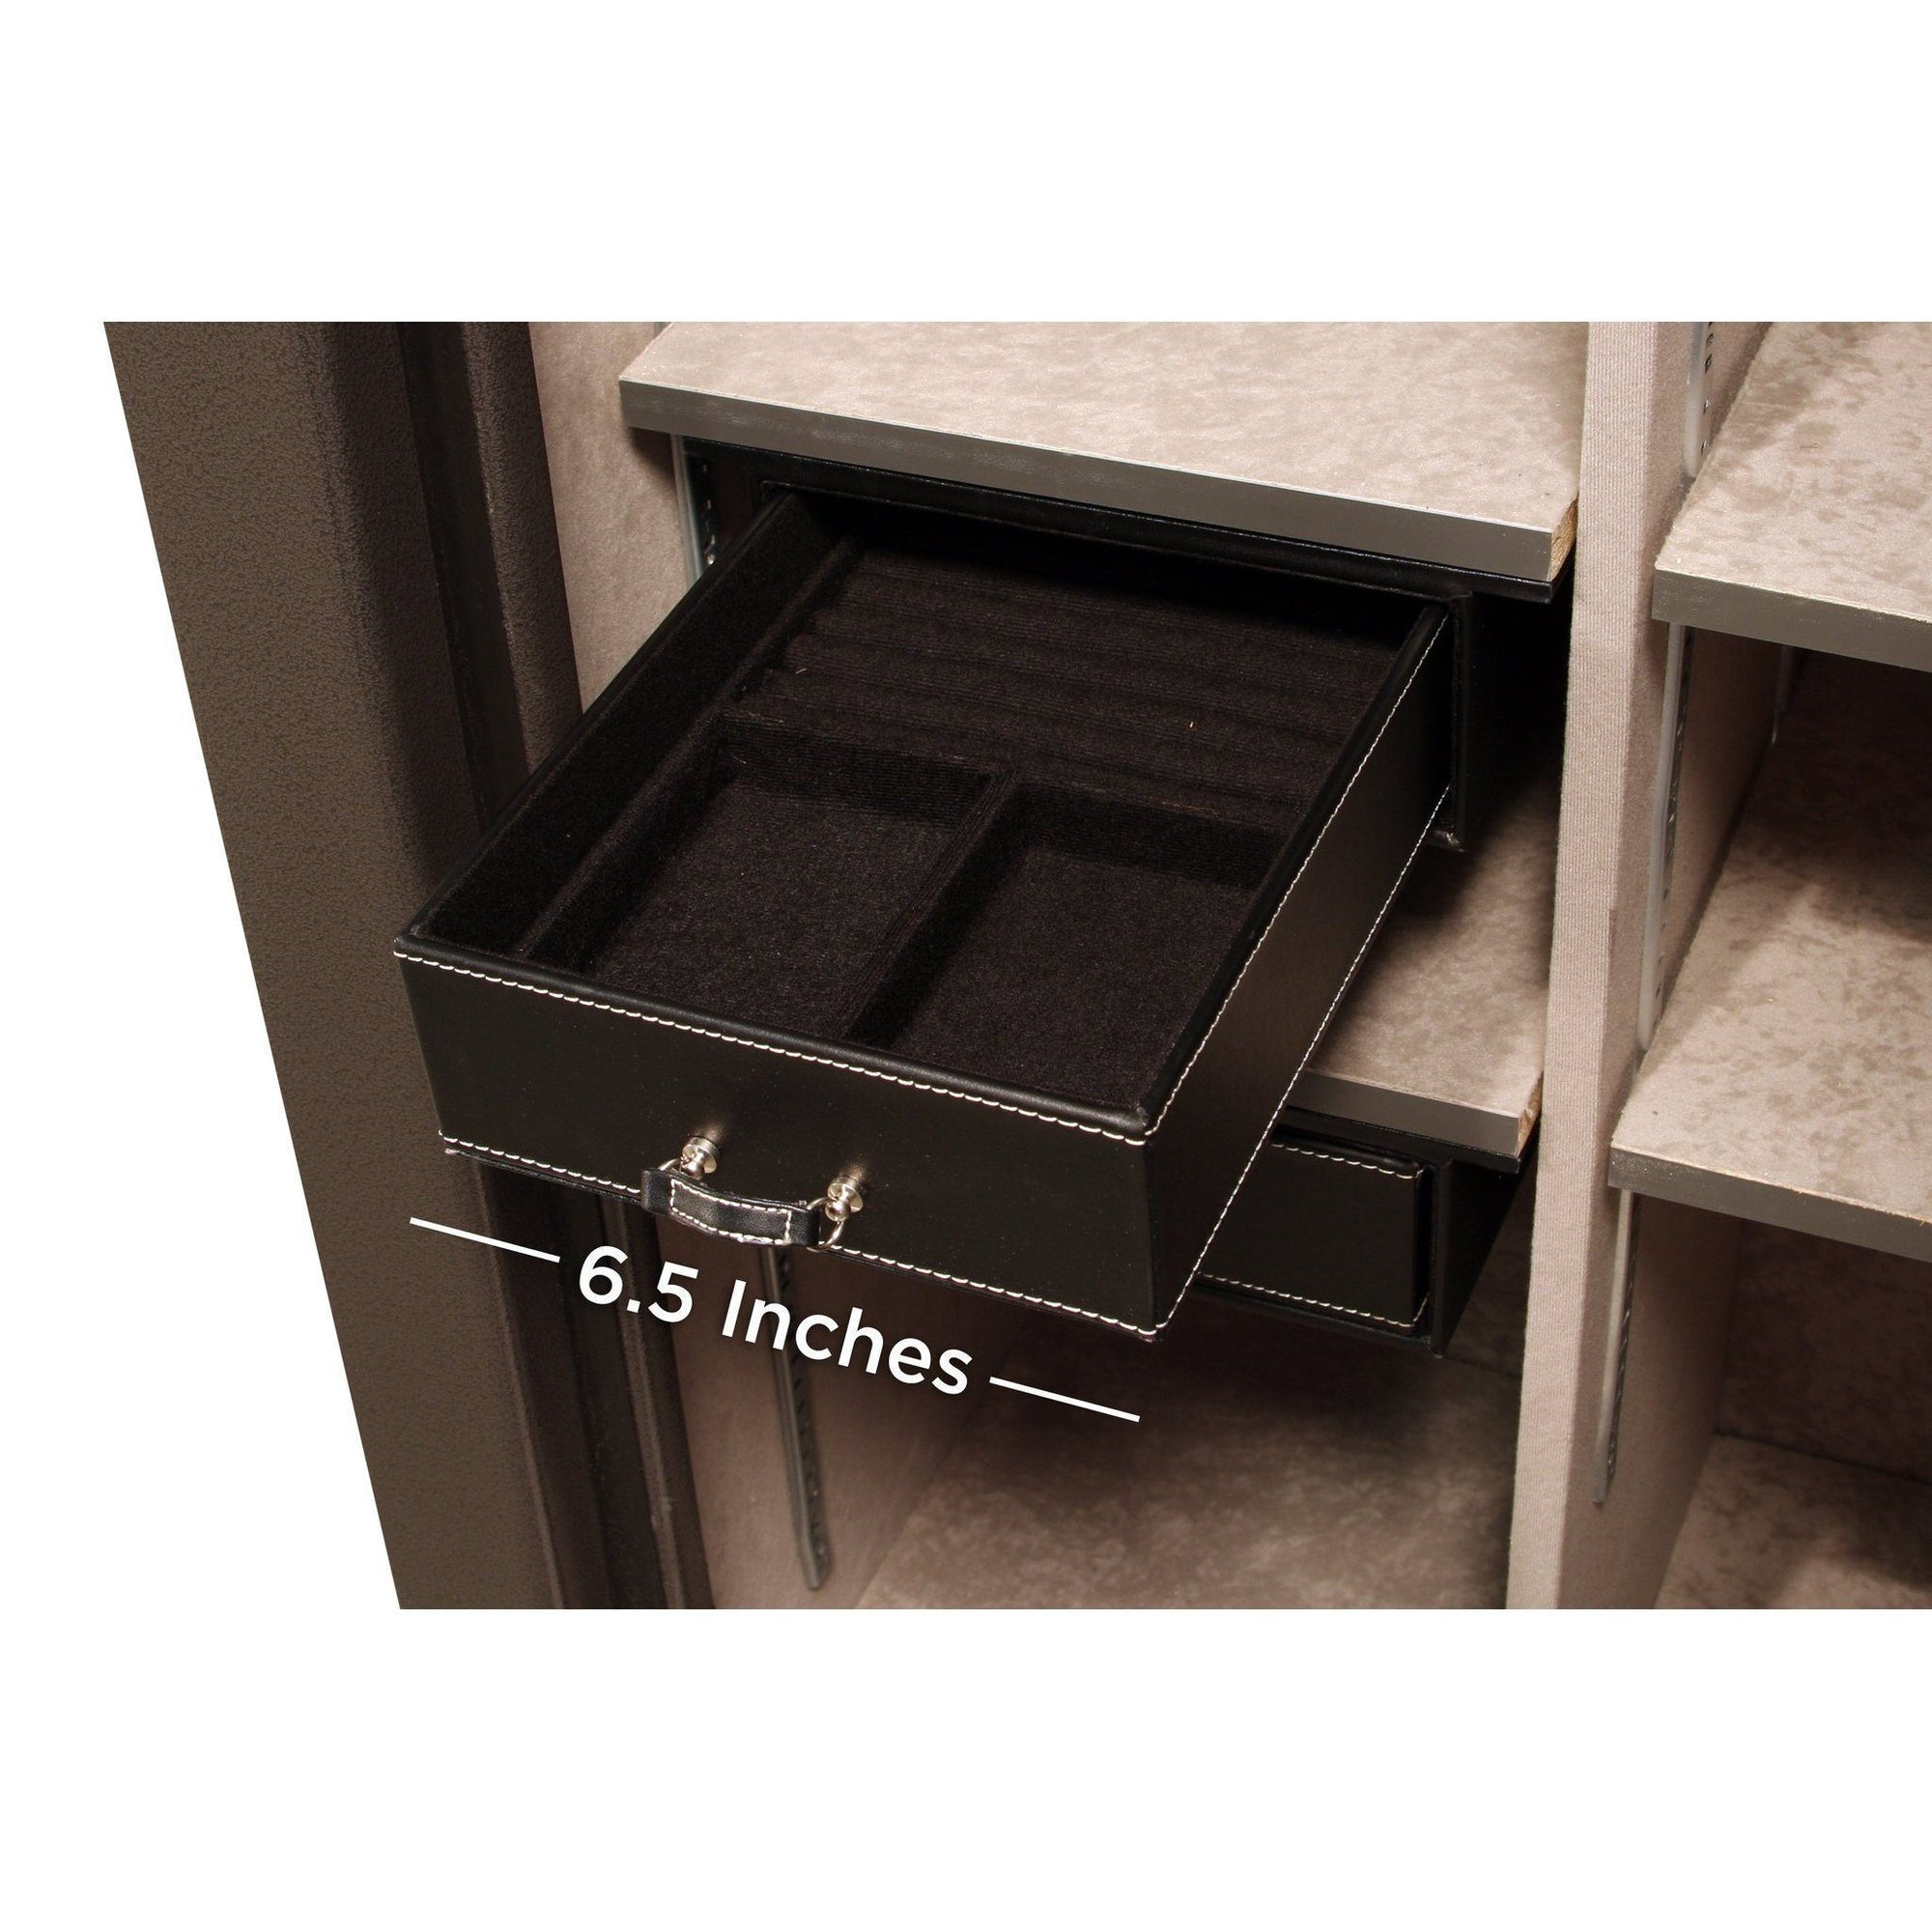 Accessory - Storage - Jewelry Drawer - 6.5 inch - under shelf mount - 20 size safes